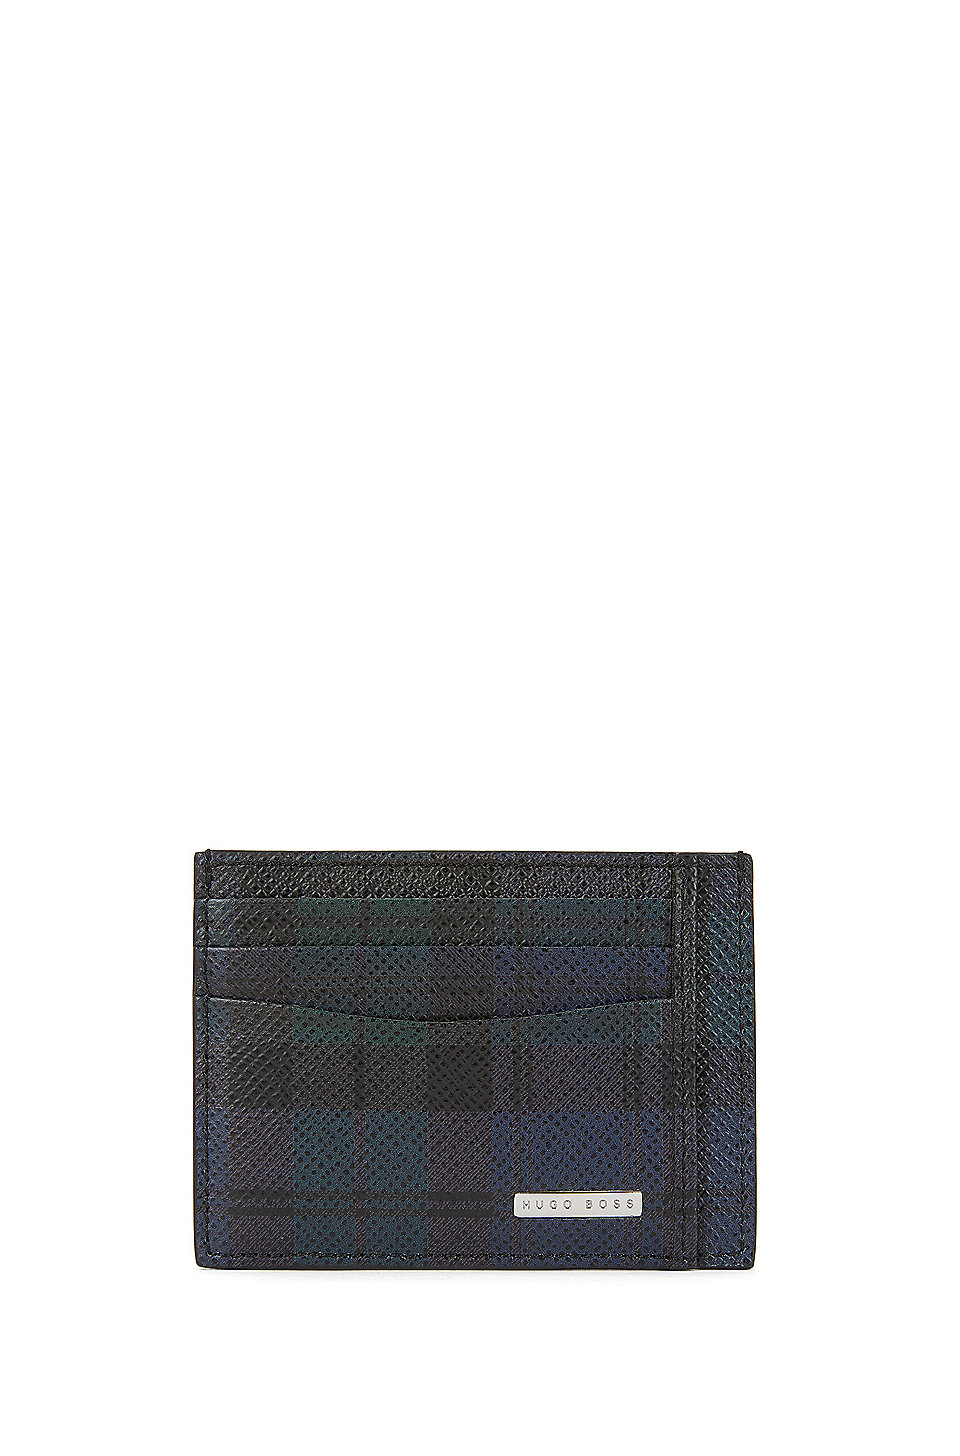 Hugo boss mens wallets leather wallets card holders black watch leather card holder signature bw s card patterned magicingreecefo Choice Image